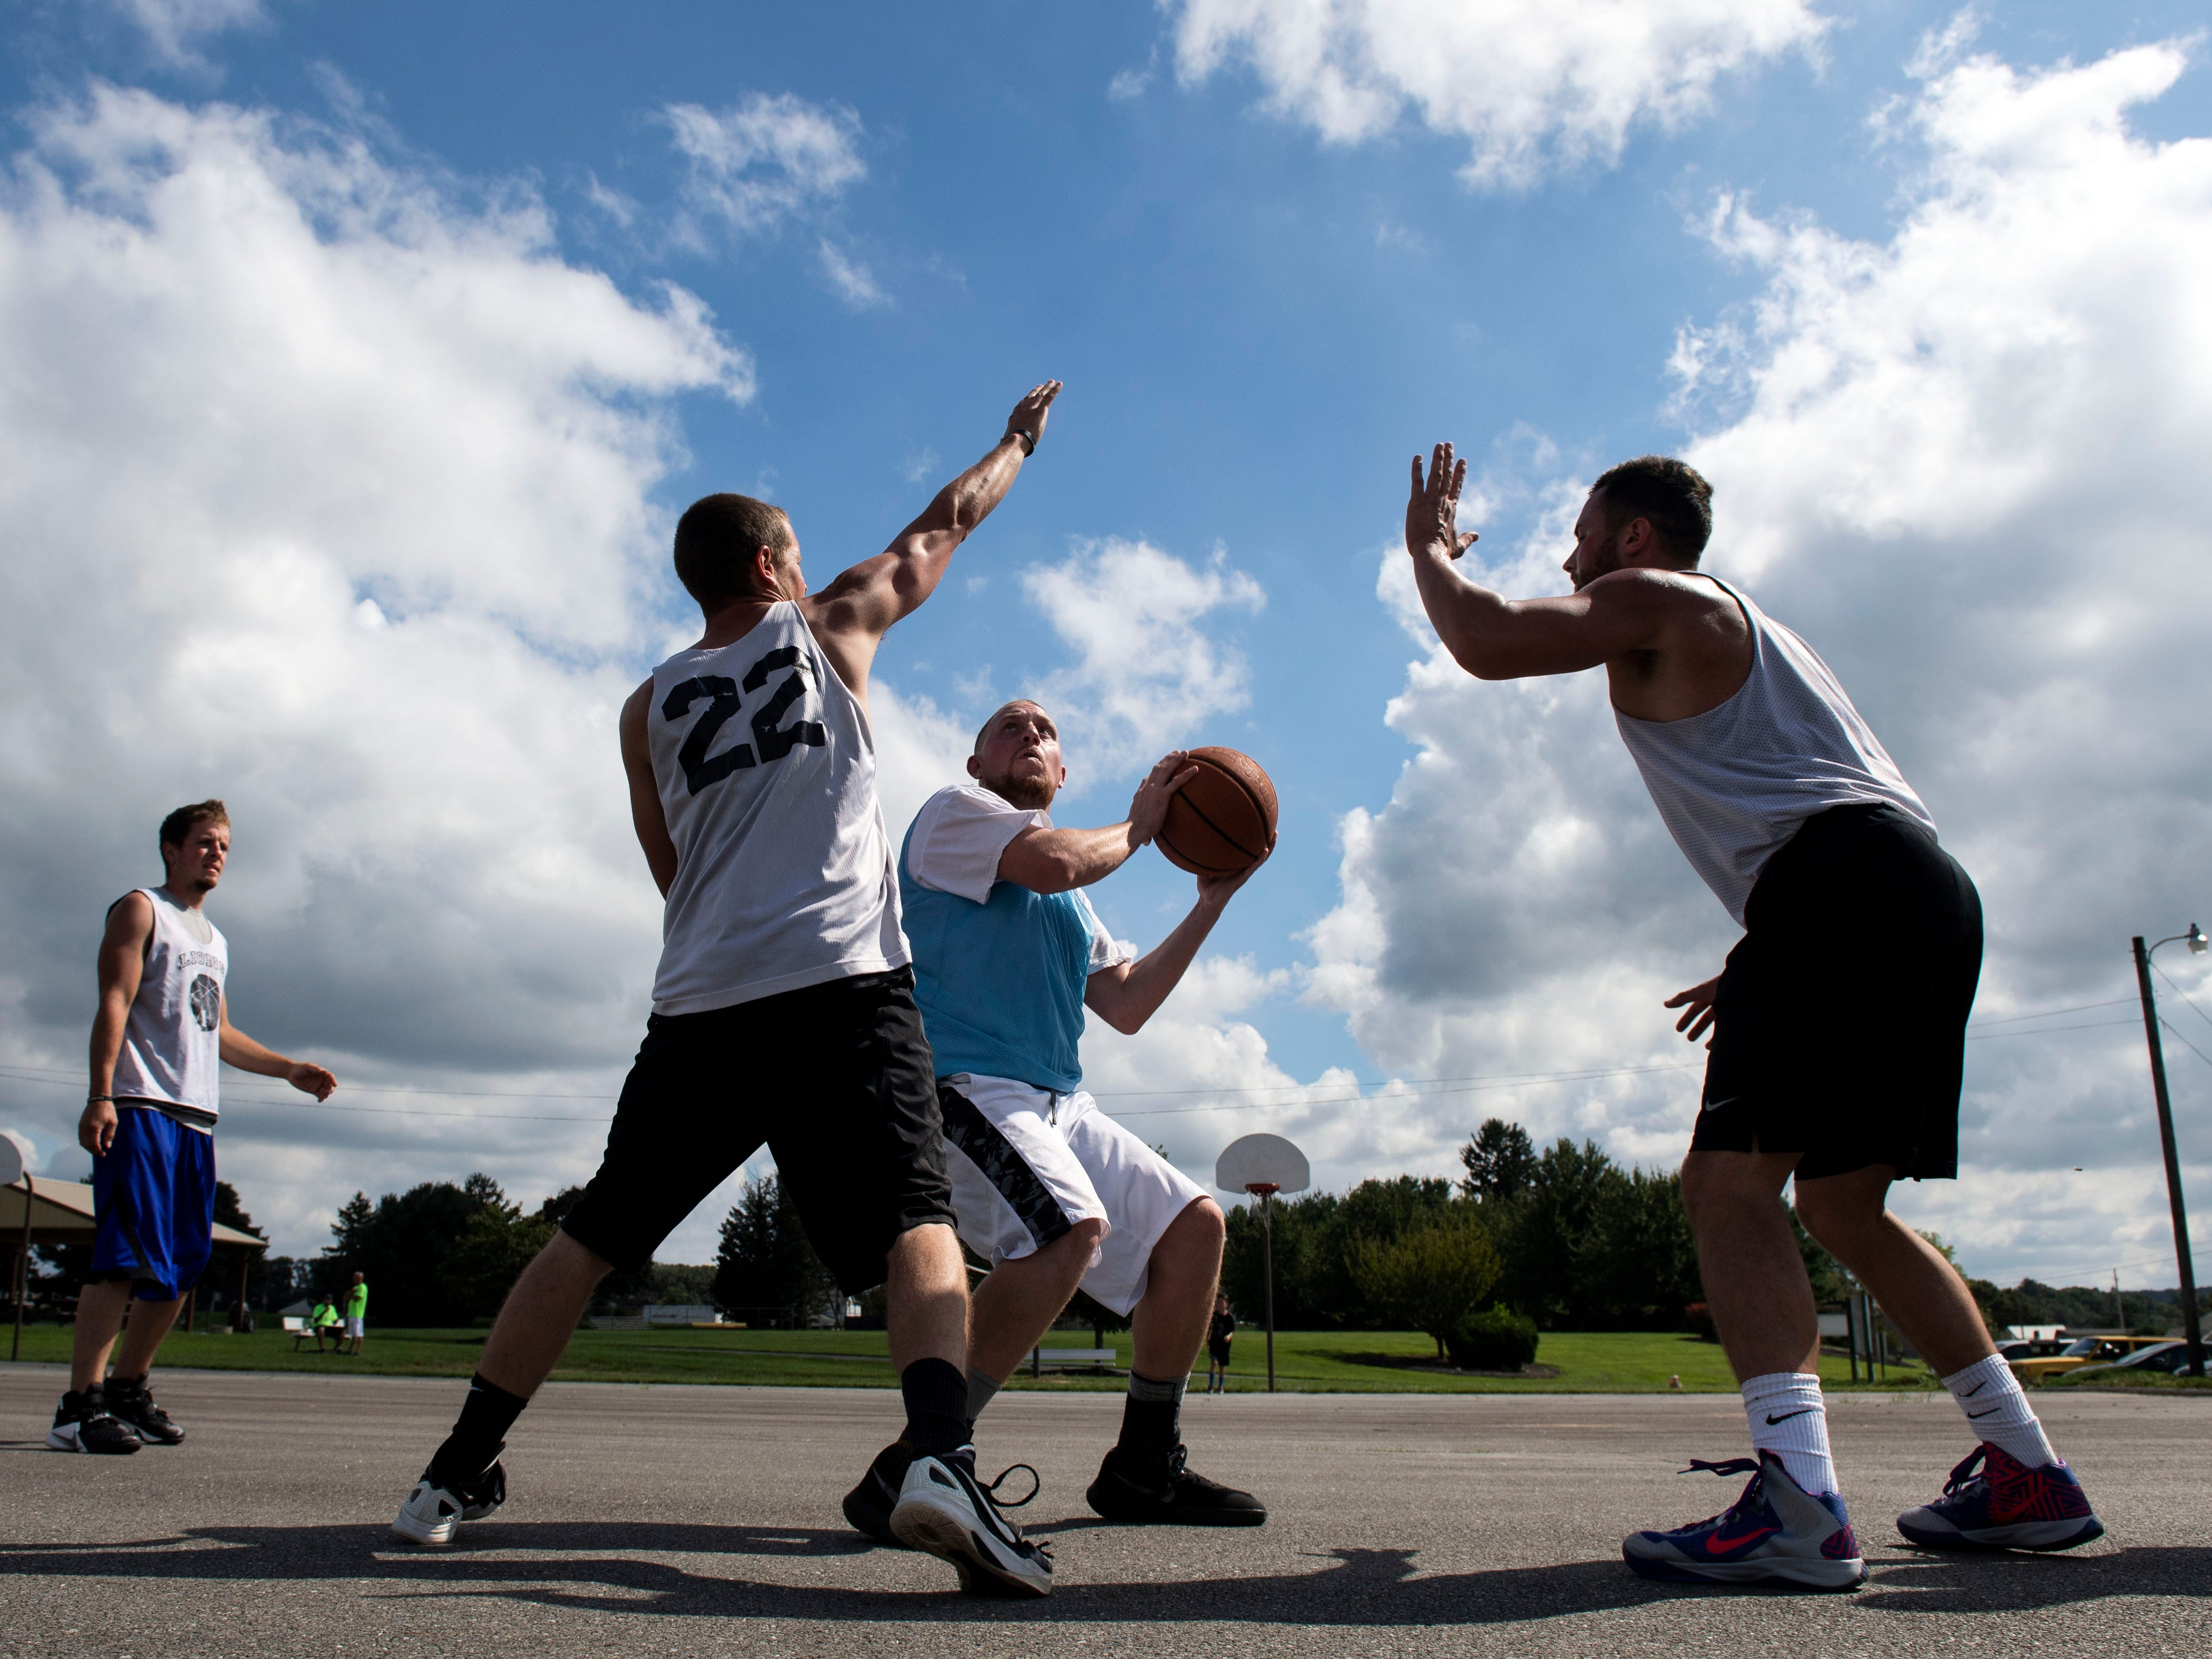 R.J. Stoutzenberger, center, gets ready to shoot during the championship game of the 'Don't Hate the Race' 3-on-3 tournament on Saturday, September 15, 2018. The 3-on-3 tournament was put on to honor Chad Merrill, who was shot and killed on July 21 outside the Red Rose Restaurant.